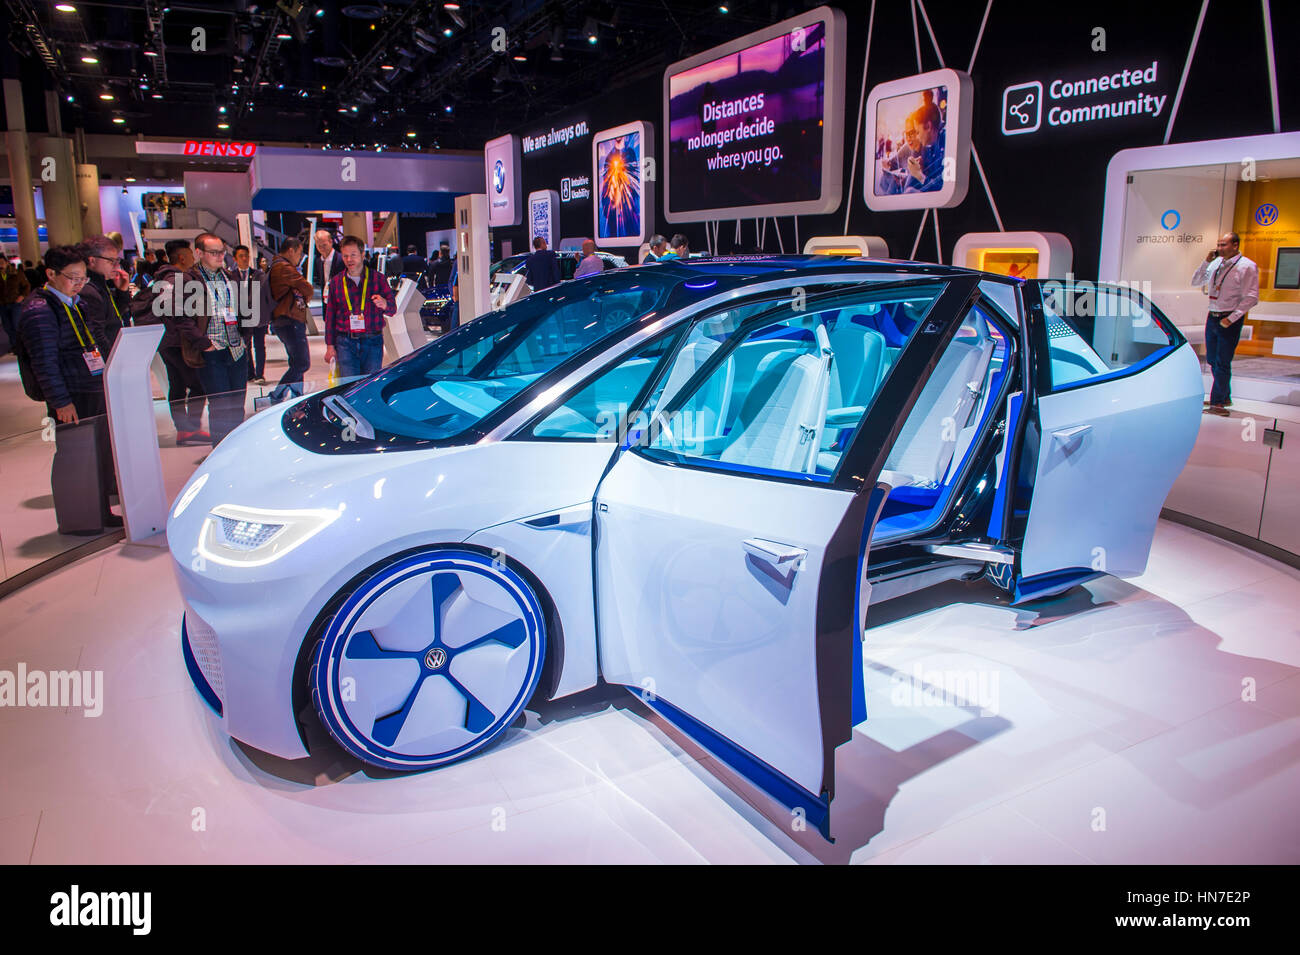 Vw Las Vegas >> The Volkswagen Booth At The Ces Show In Las Vegas Ces Is The